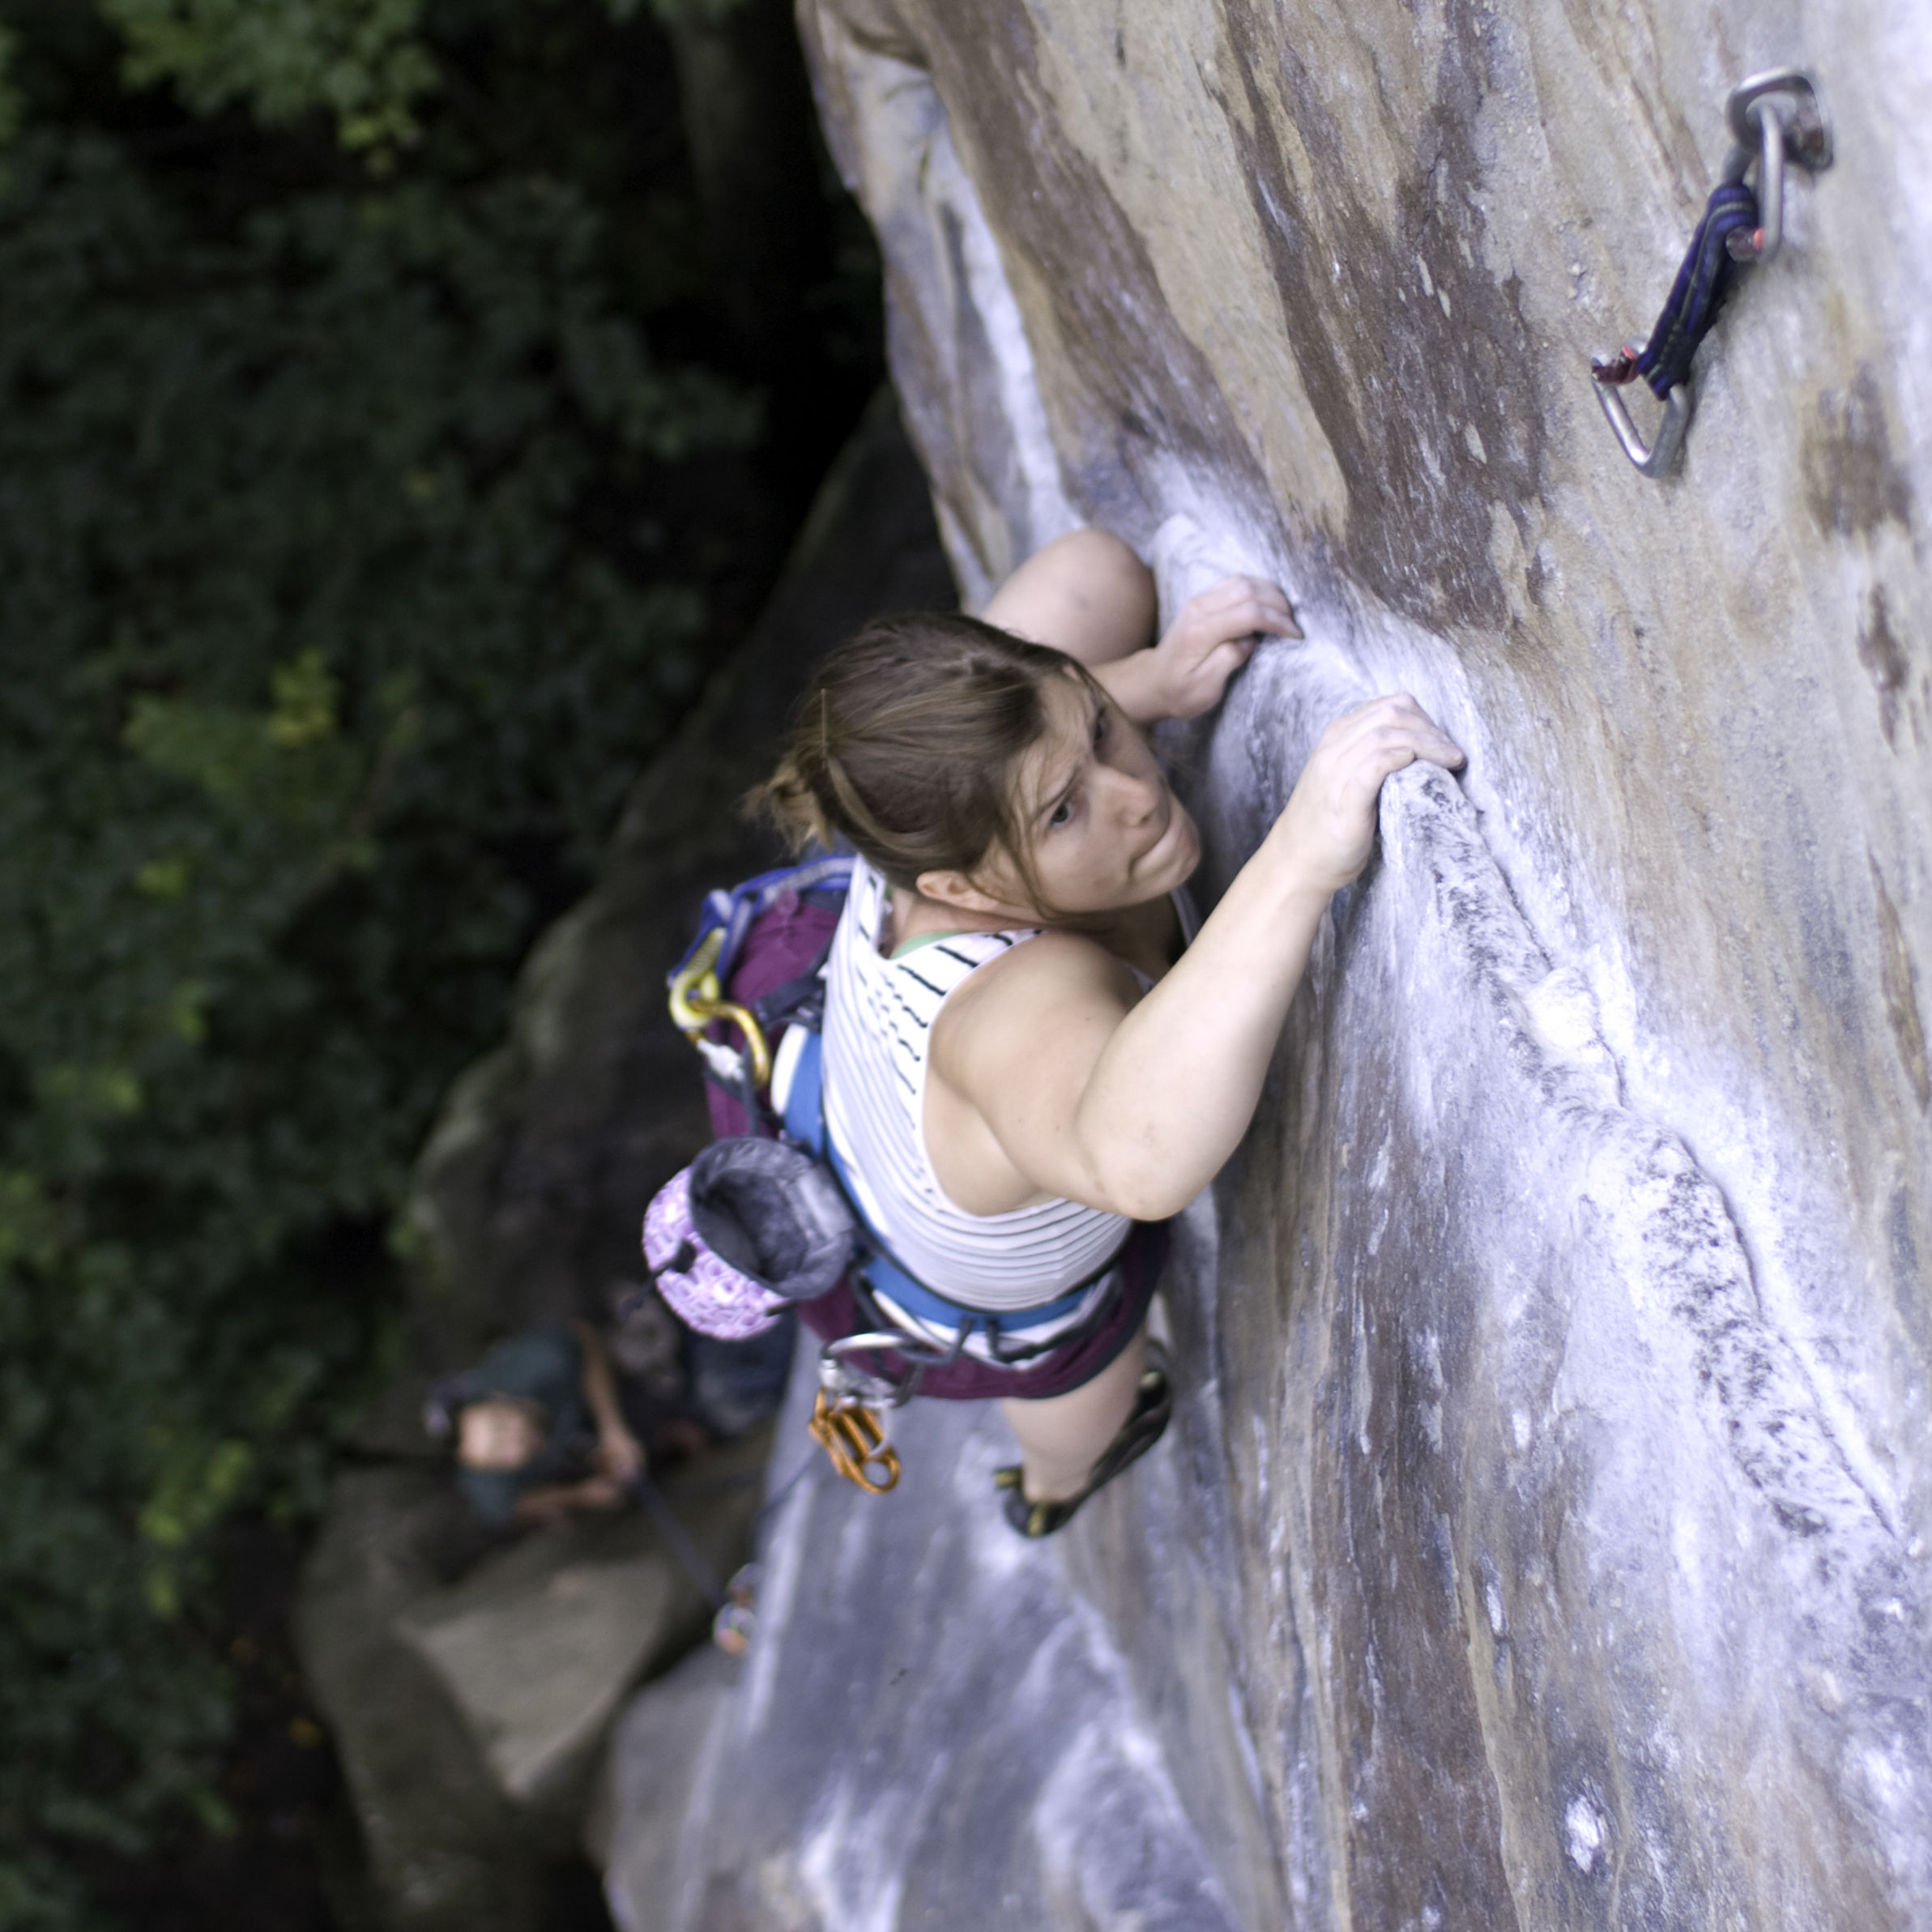 Student during an outdoor climbing experience